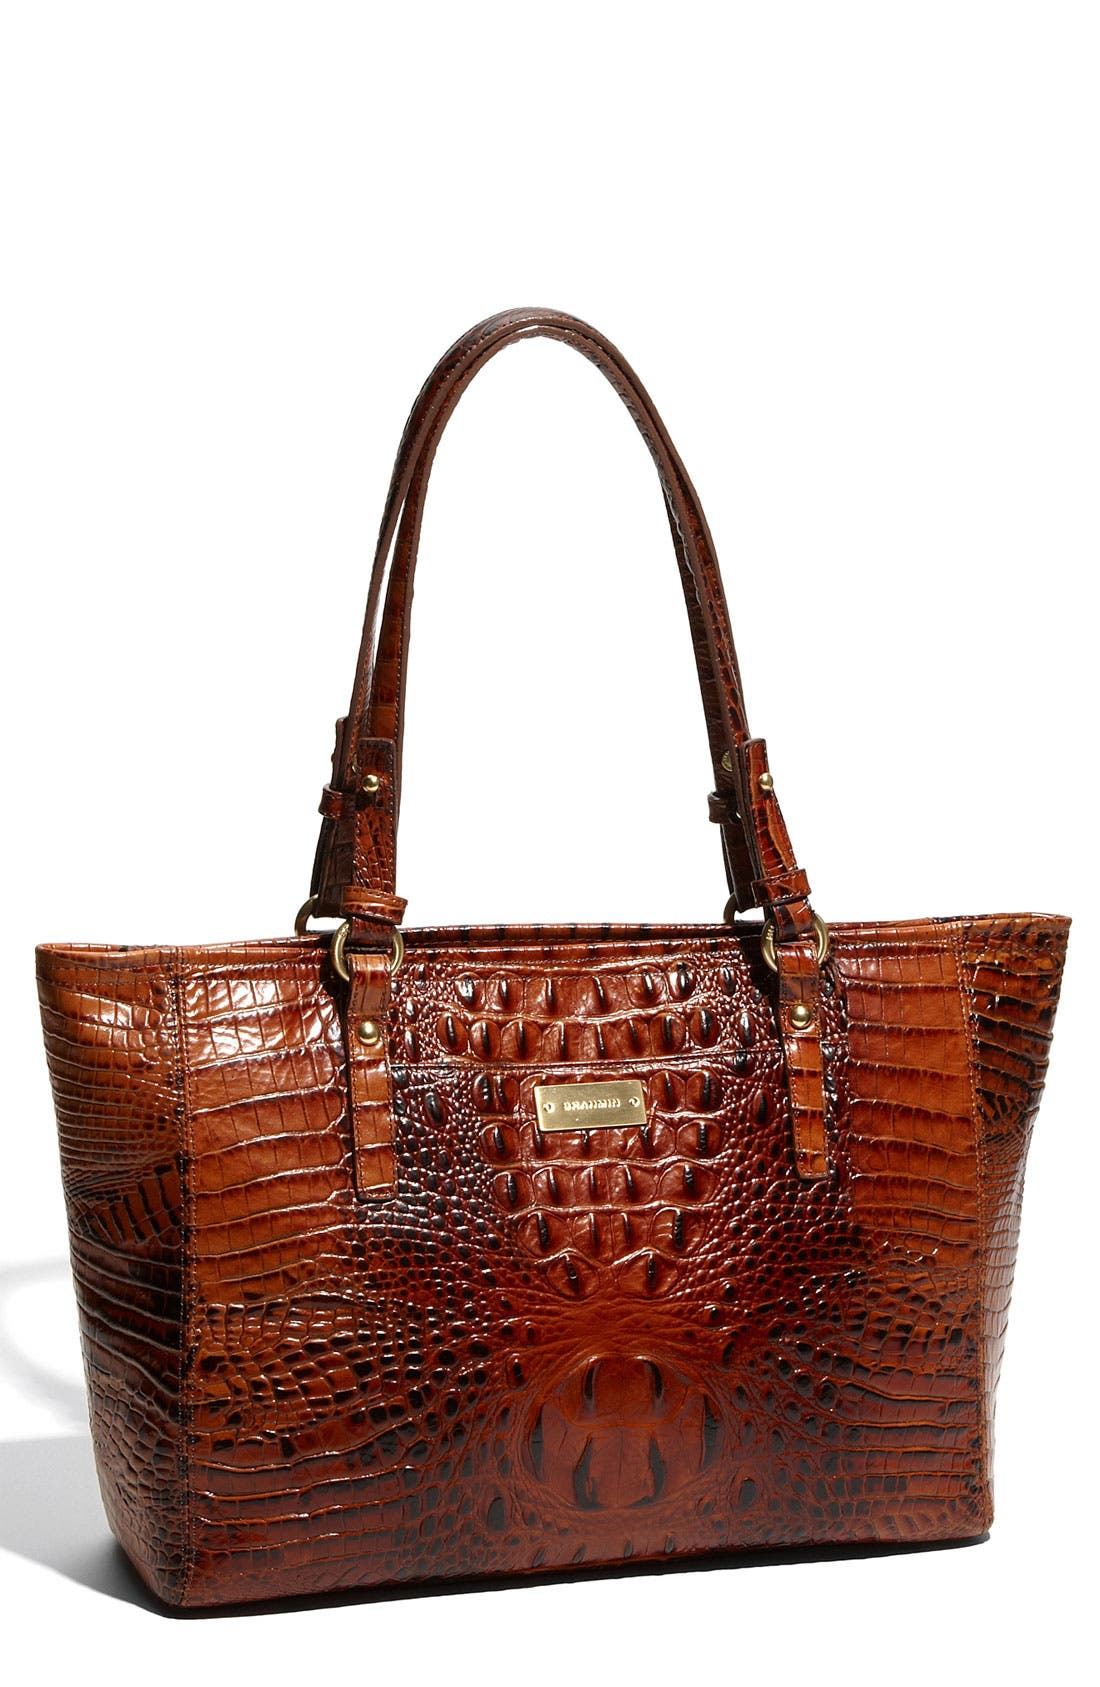 Alternate Image 1 Selected - Brahmin 'Medium Melbourne Arno' Croc Embossed Tote